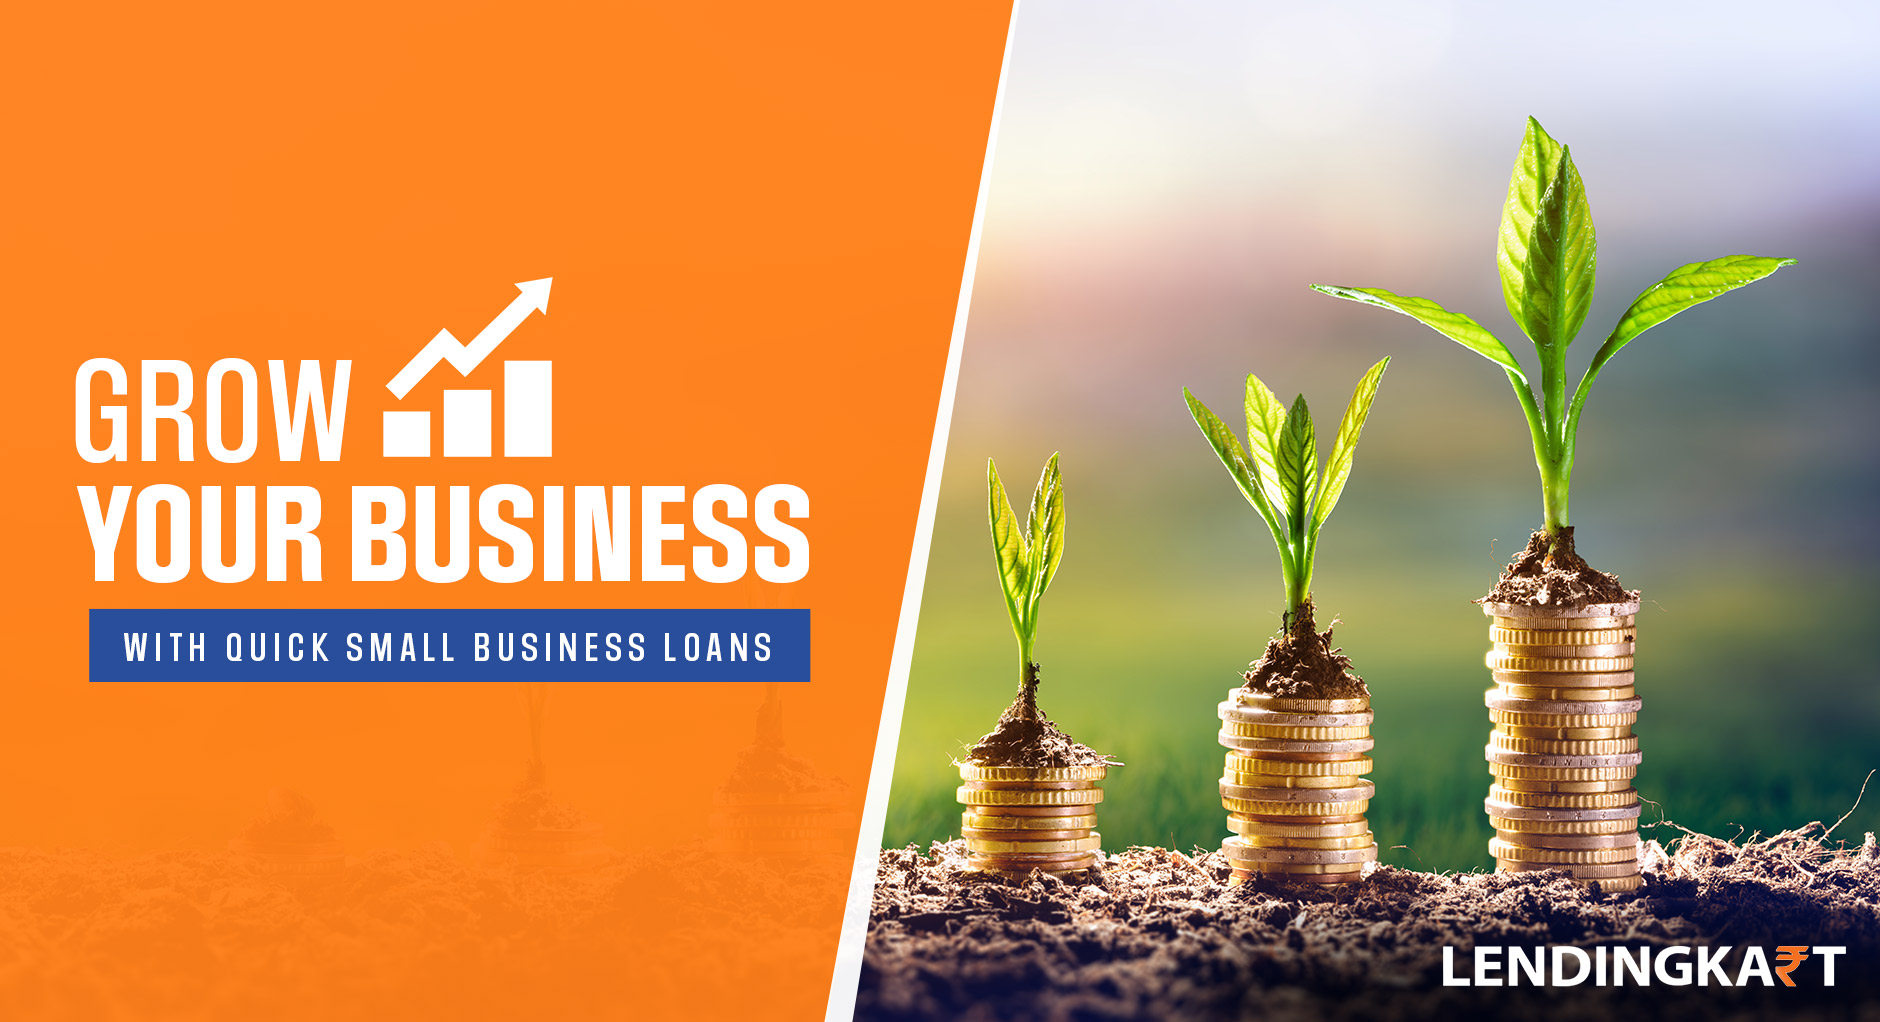 Quick Small Business Loans